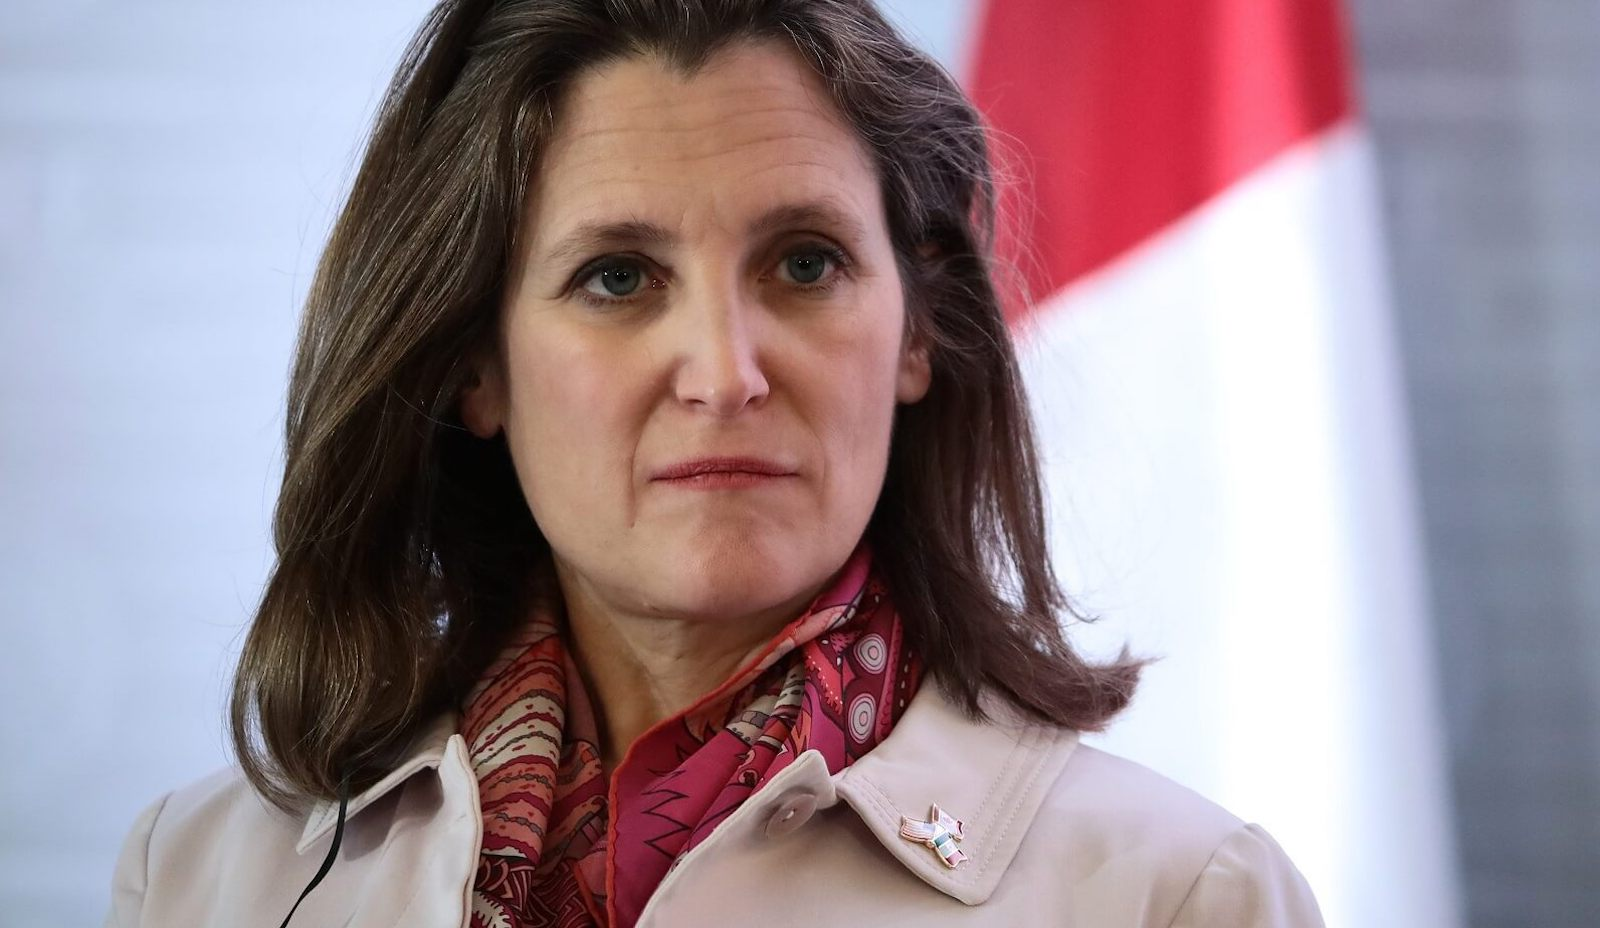 Canadian Foreign Minister Chrystia Freeland in Mexico City, 2 February 2018 (Photo: Hector Vivas/Getty)